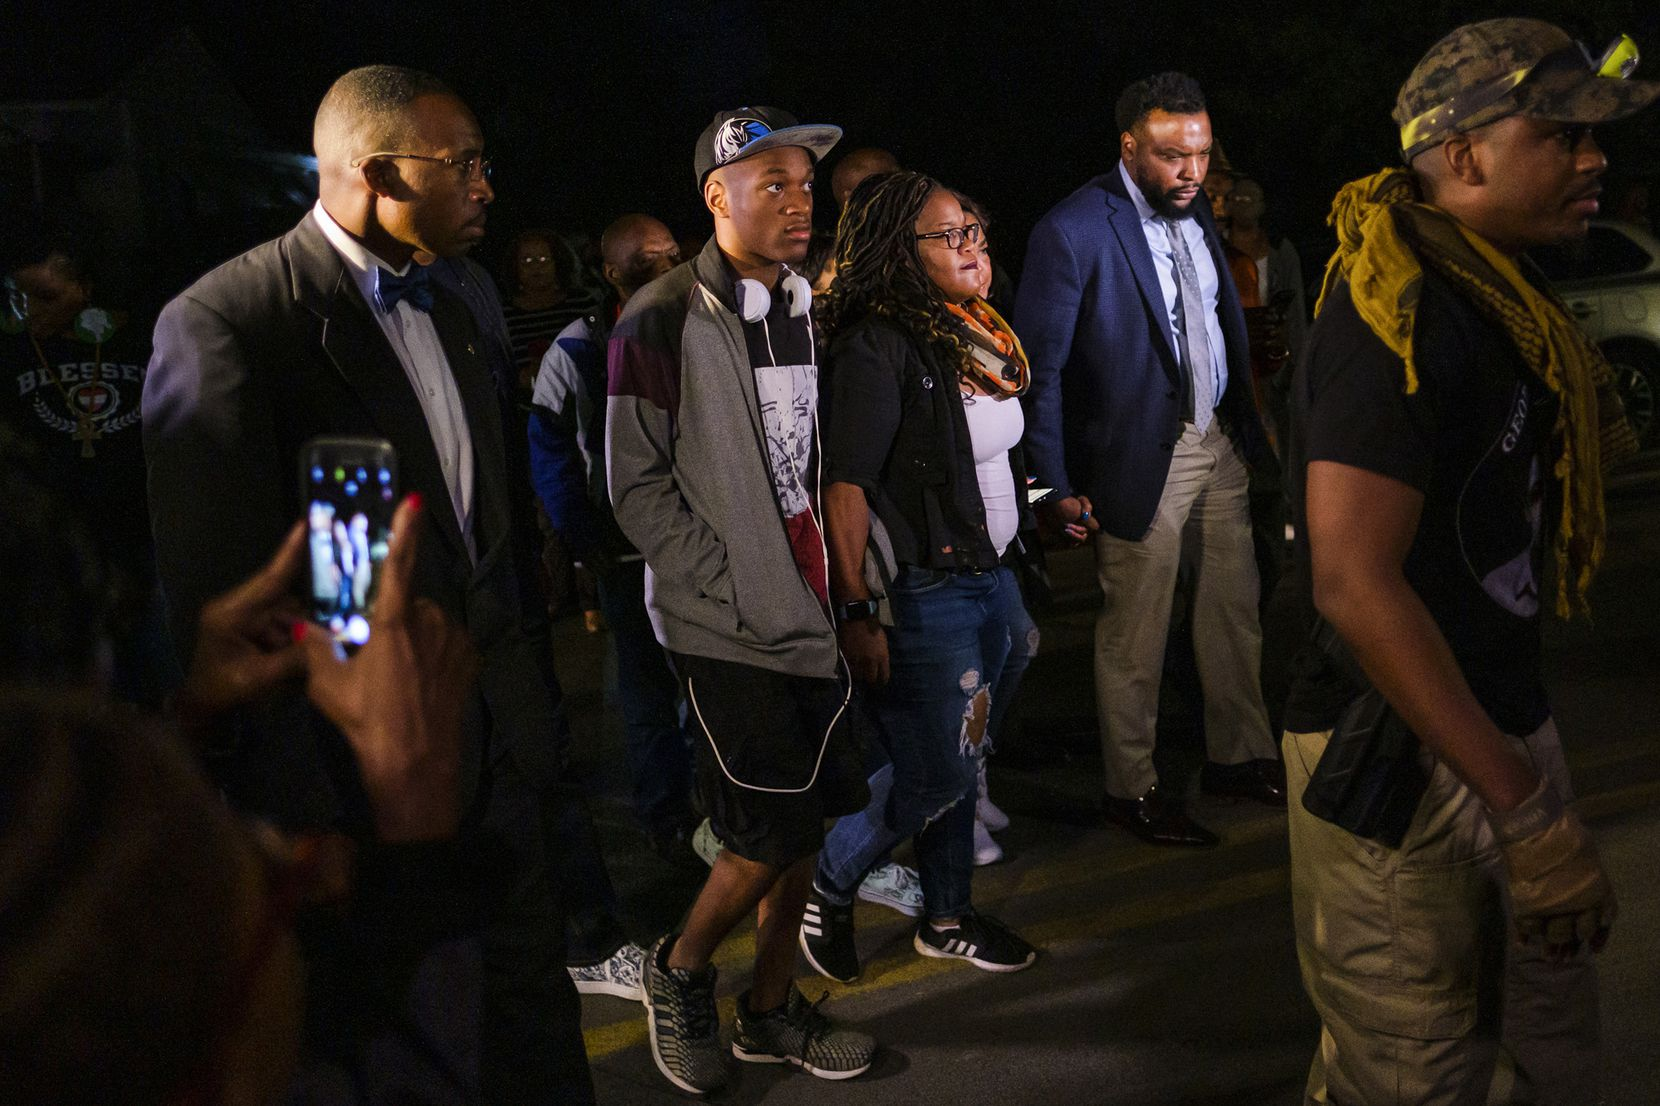 Attorney Lee Merritt (right) walks with members of the victimÕs family as they arrive at community vigil for Atatiana Jefferson on Sunday, Oct. 13, 2019, in Fort Worth.